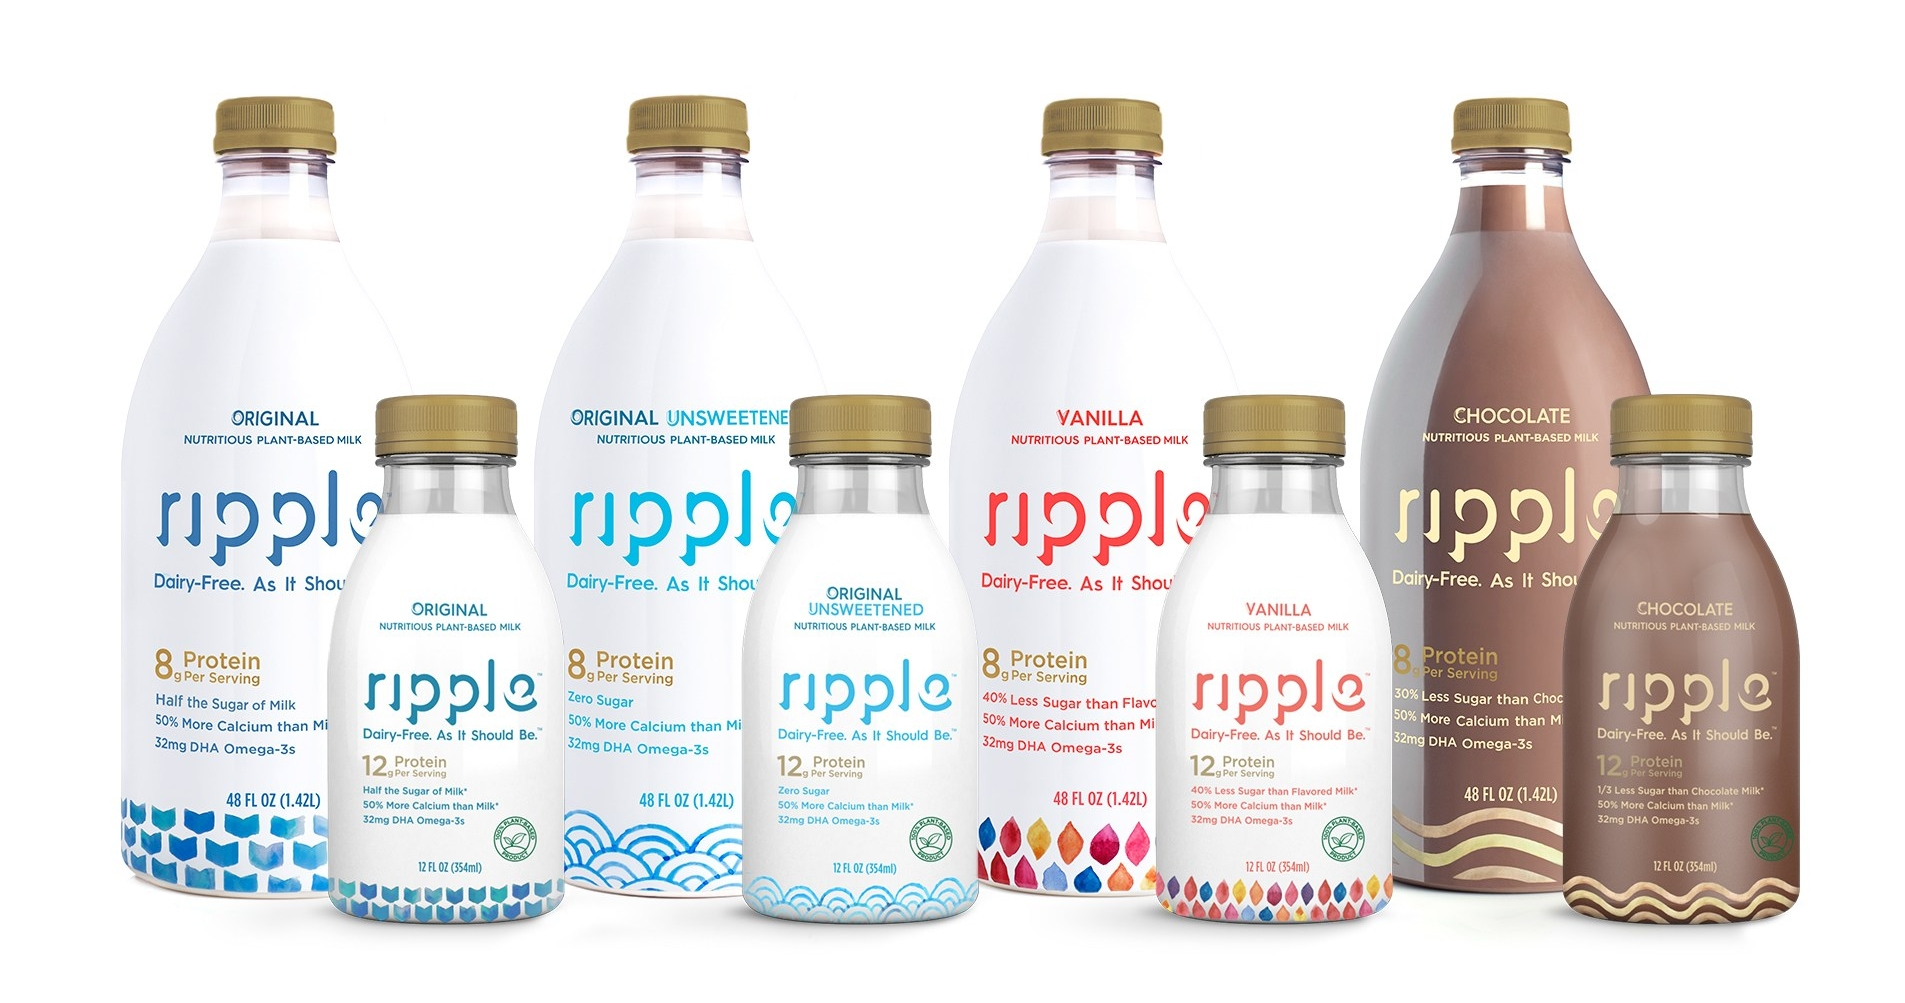 Goldman Sachs invests in plant protein startup Ripple.